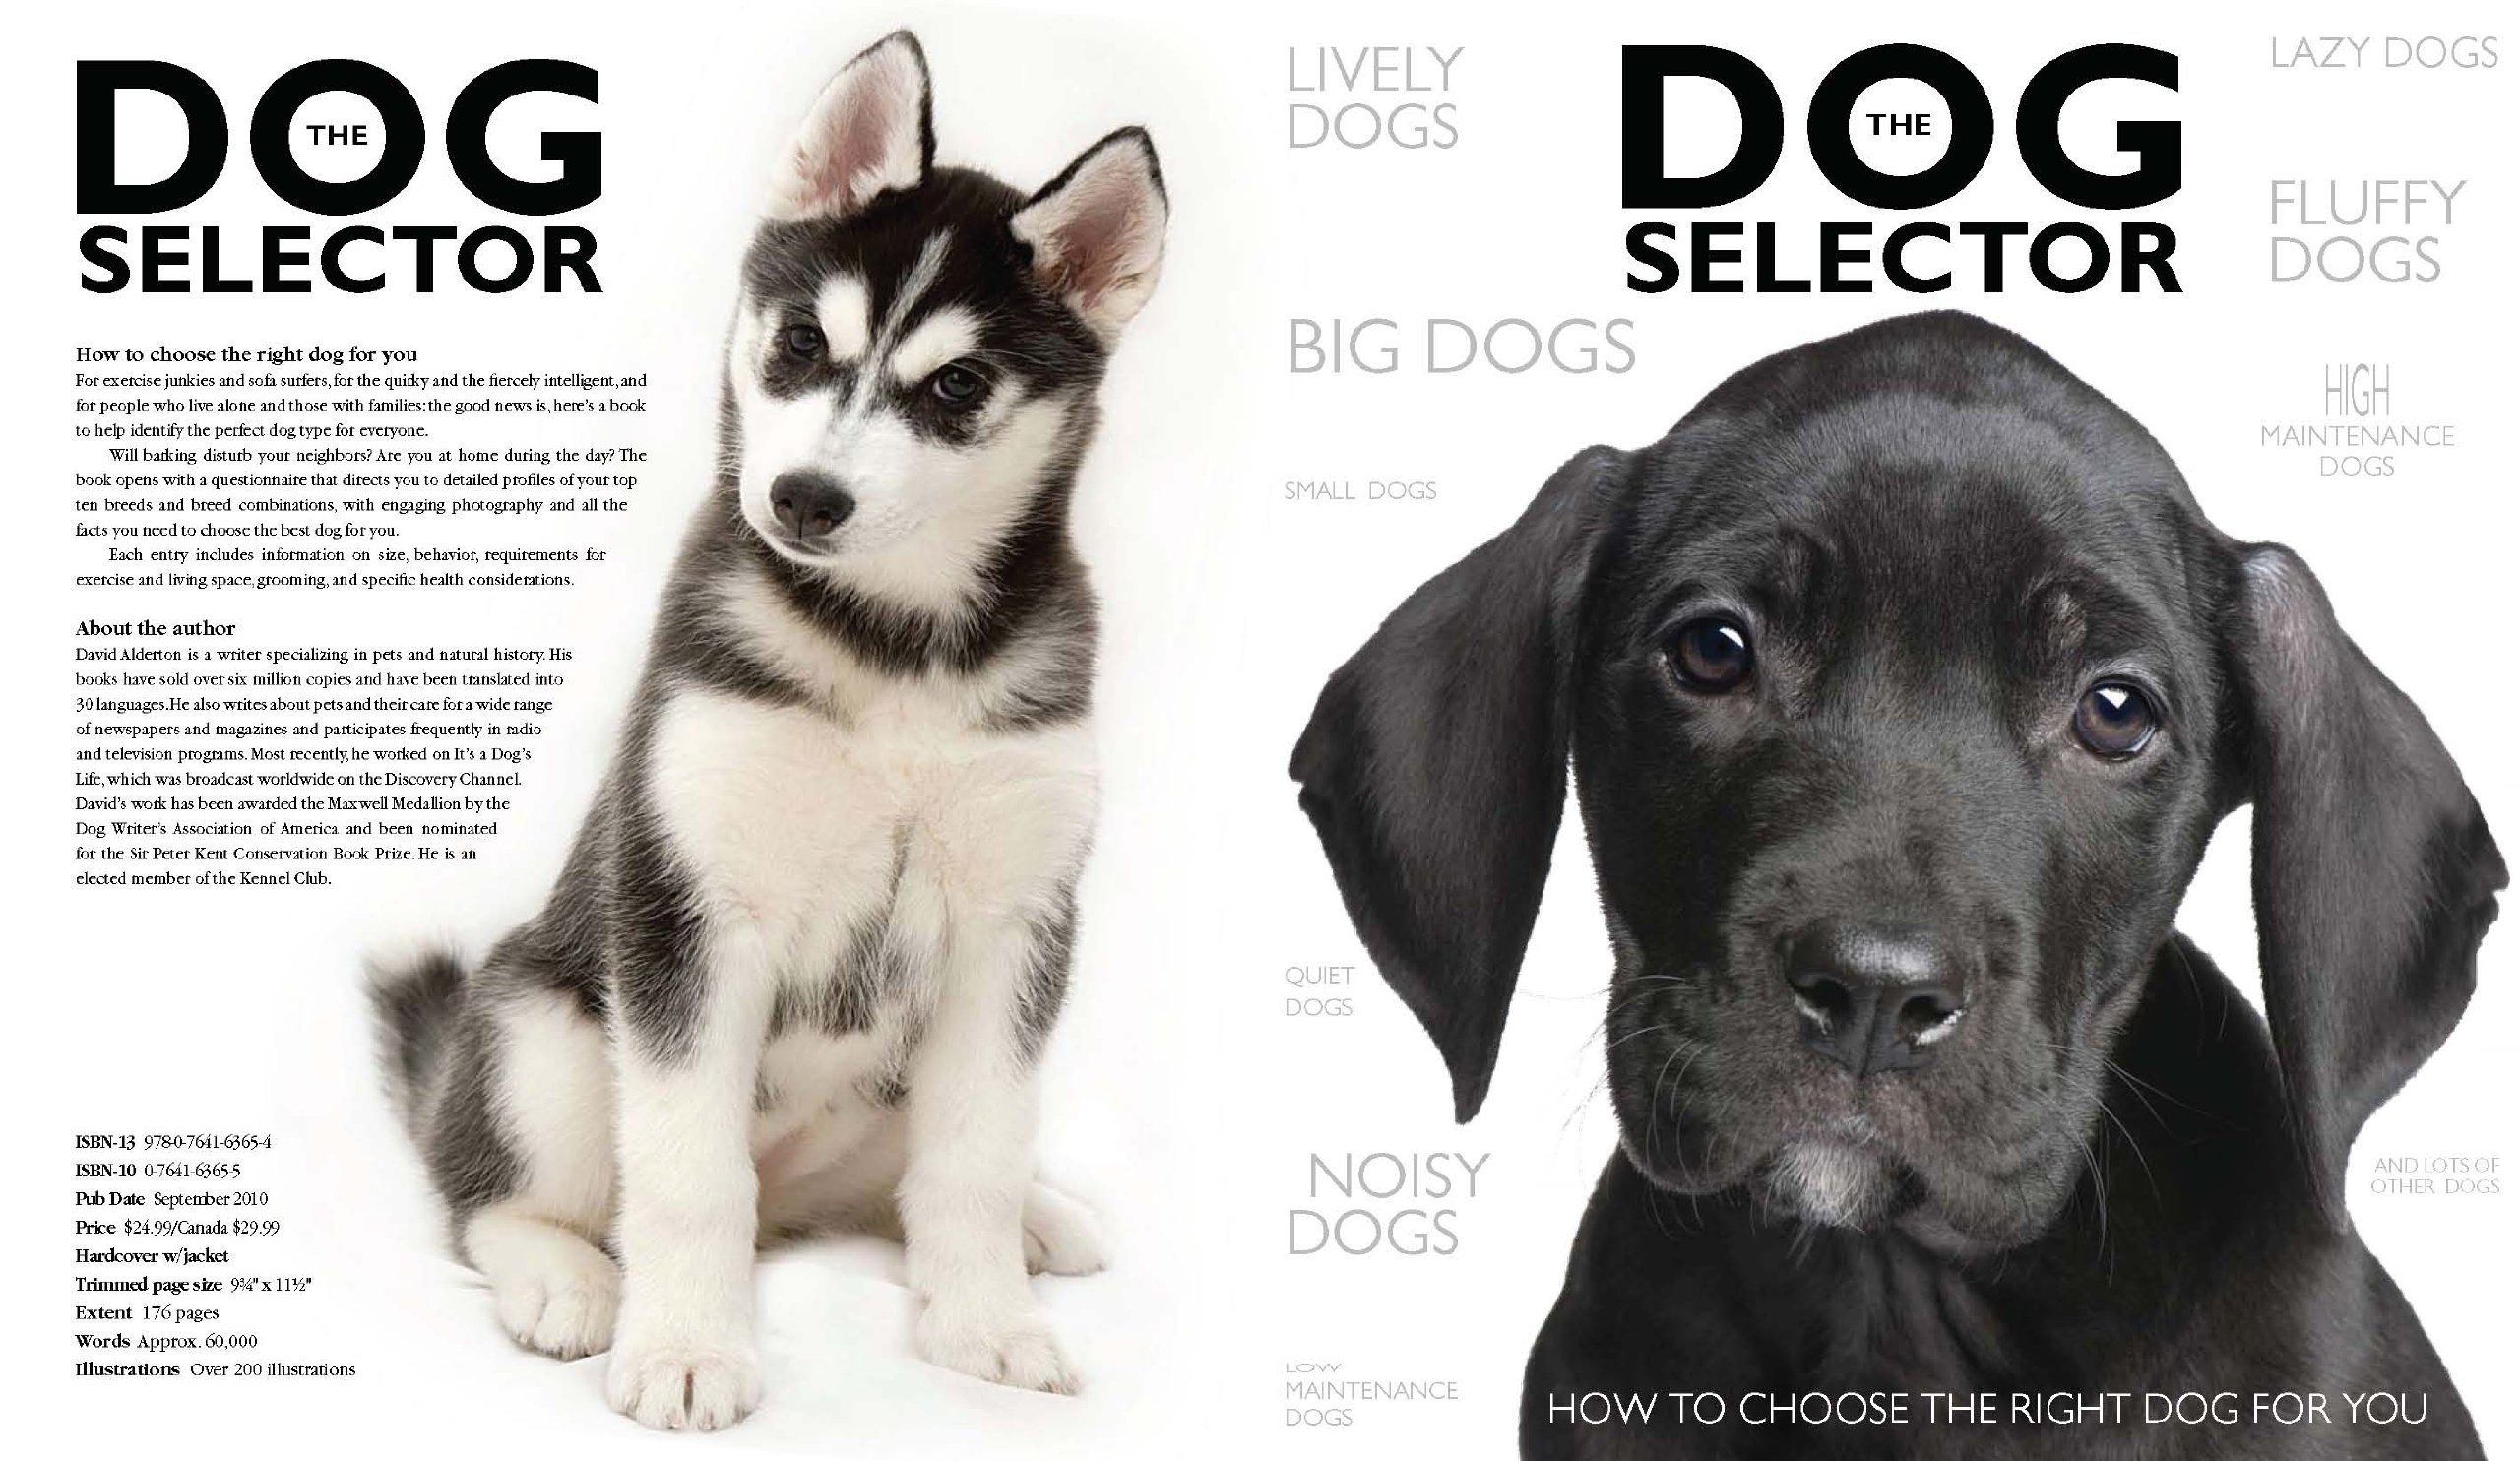 How to Choose the Right Breed of Dog images